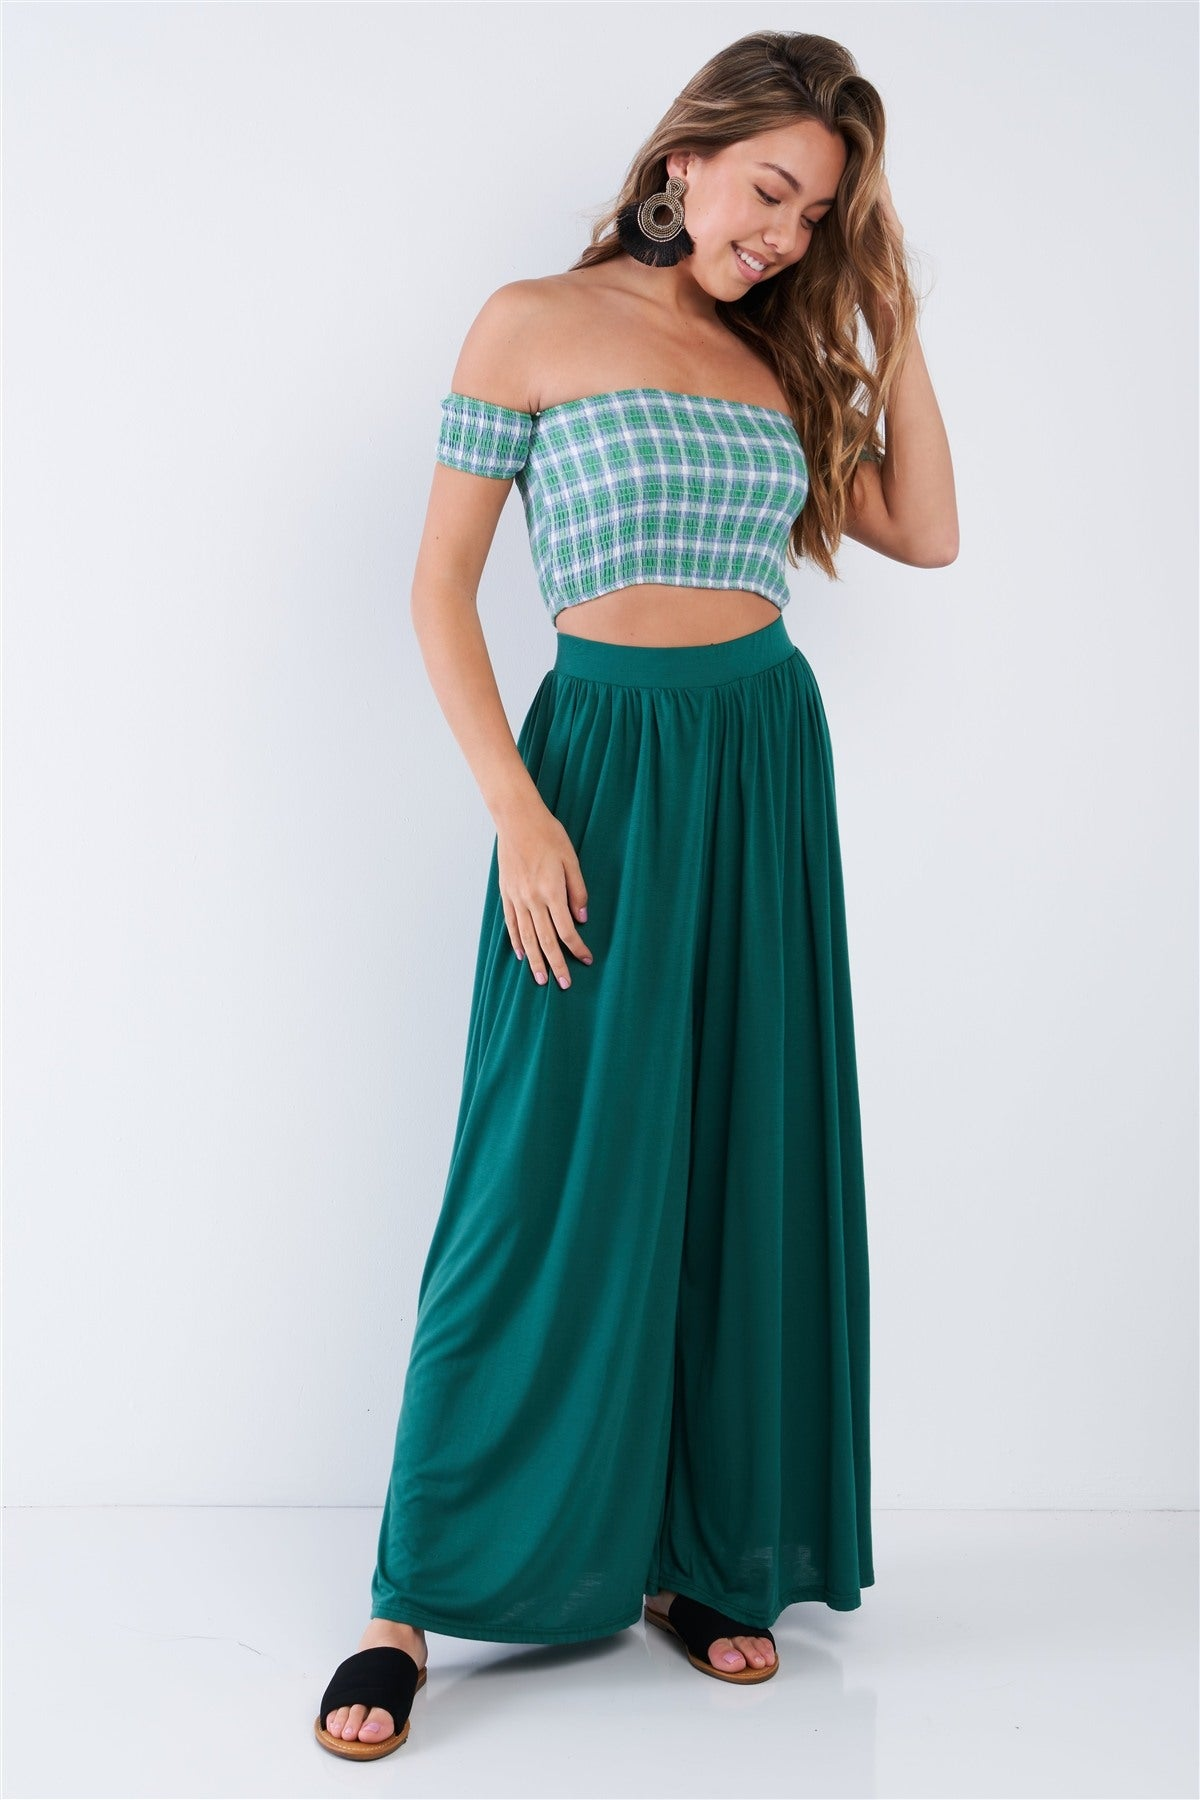 Green Checkered Cotton Chic Off-the-shoulder Crop Top